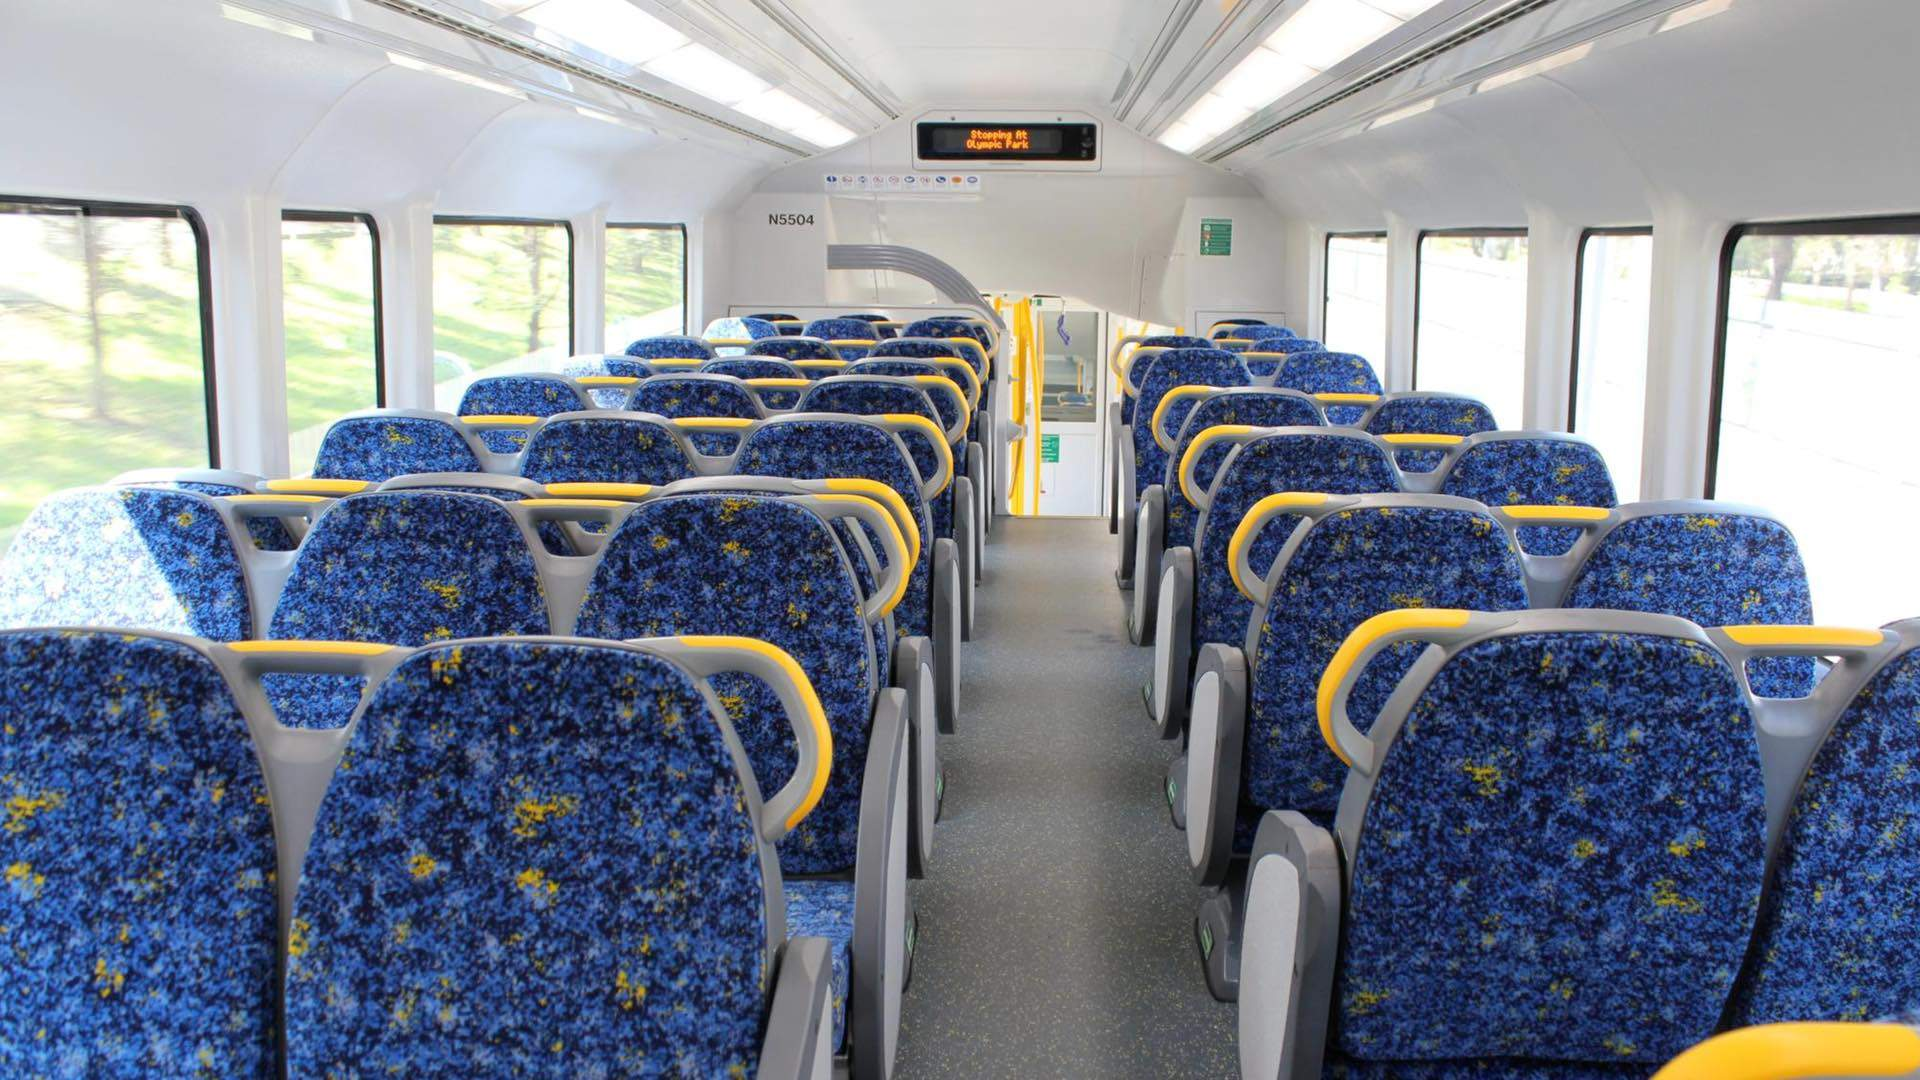 Sydney's Public Transport Services Have Been Cut by Up to 50 Percent for the Next Fortnight